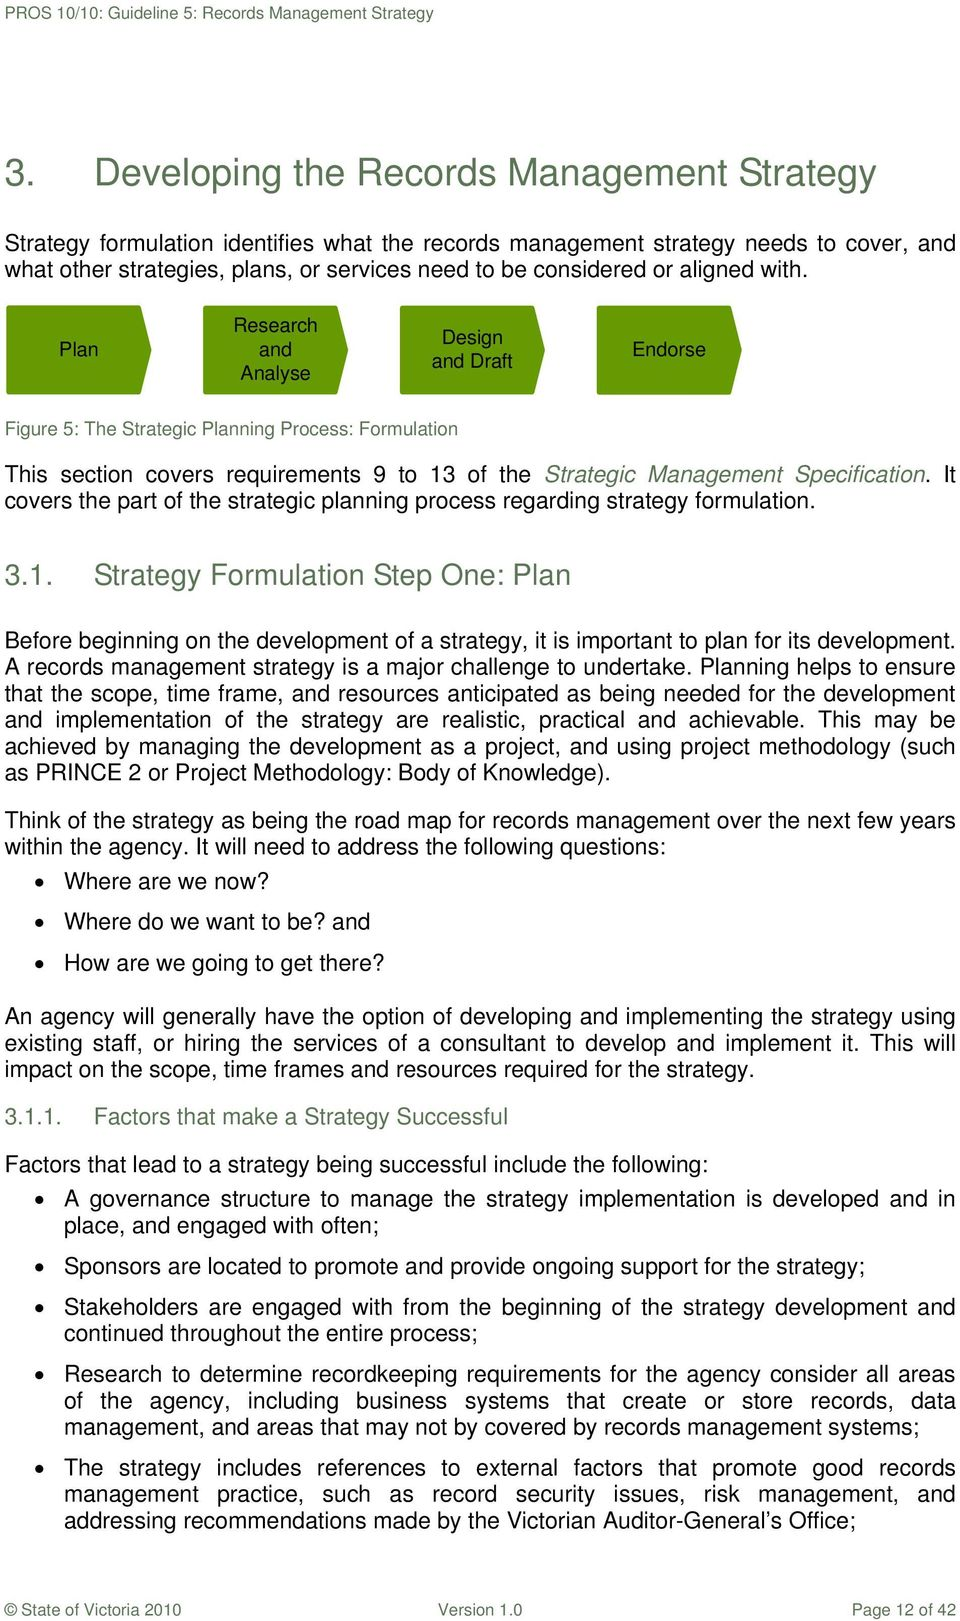 Plan Research and Analyse Design and Draft Endorse Figure 5: The Strategic Planning Process: Formulation This section covers requirements 9 to 13 of the Strategic Management Specification.